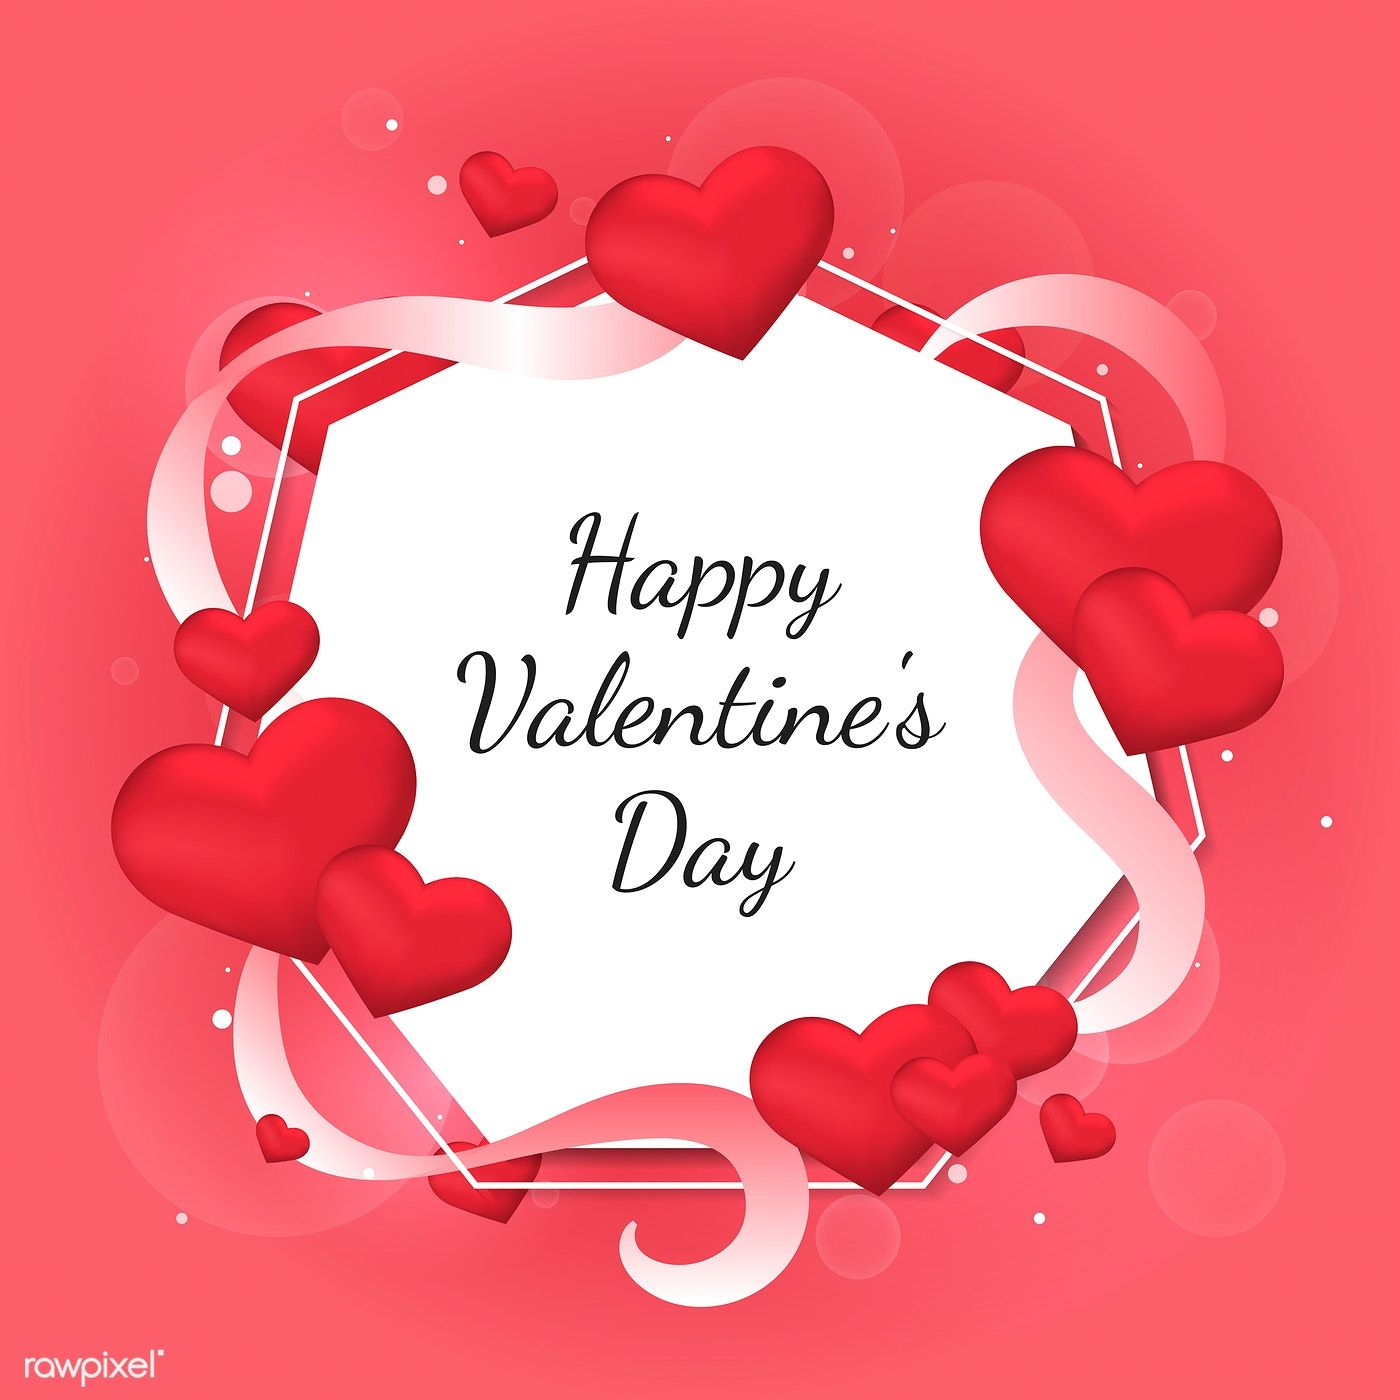 Valentine S Day Vector Design Concept Free Image By Rawpixel Com Sasi Happy Valentines Day Images Happy Valentines Day Pictures Valentines Day Clipart